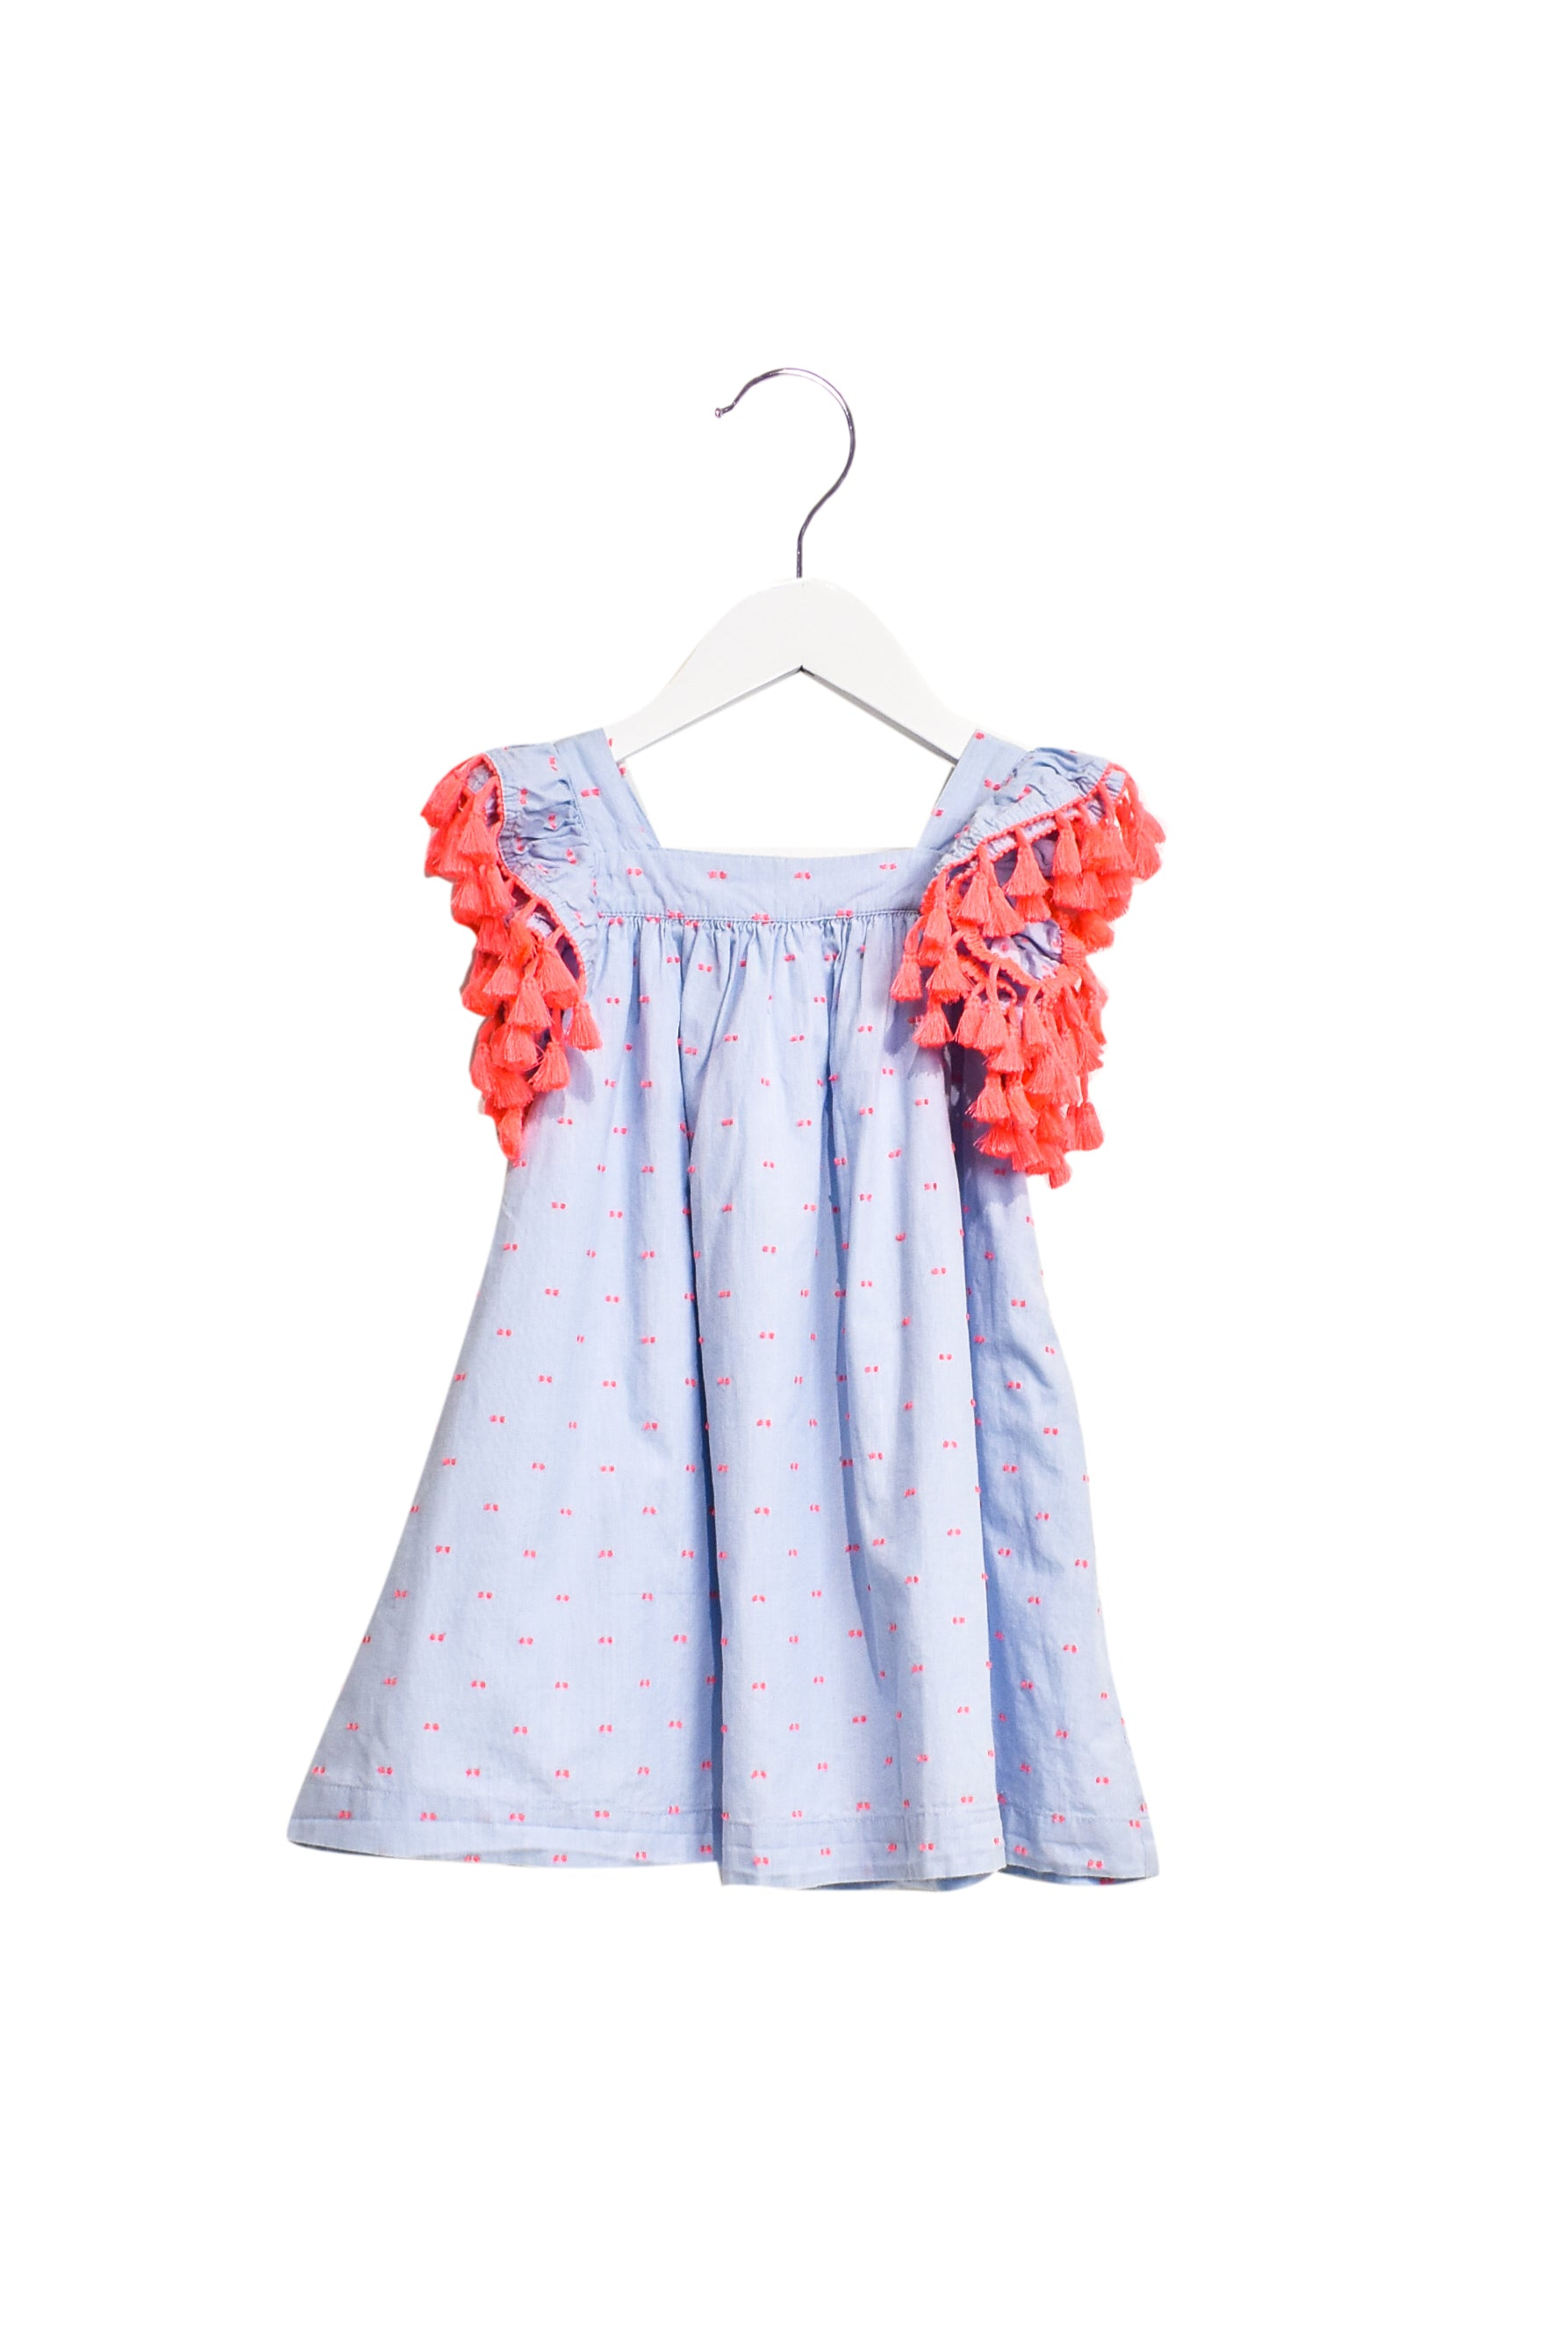 10019701 Seed Kids~Dress 3-4T at Retykle